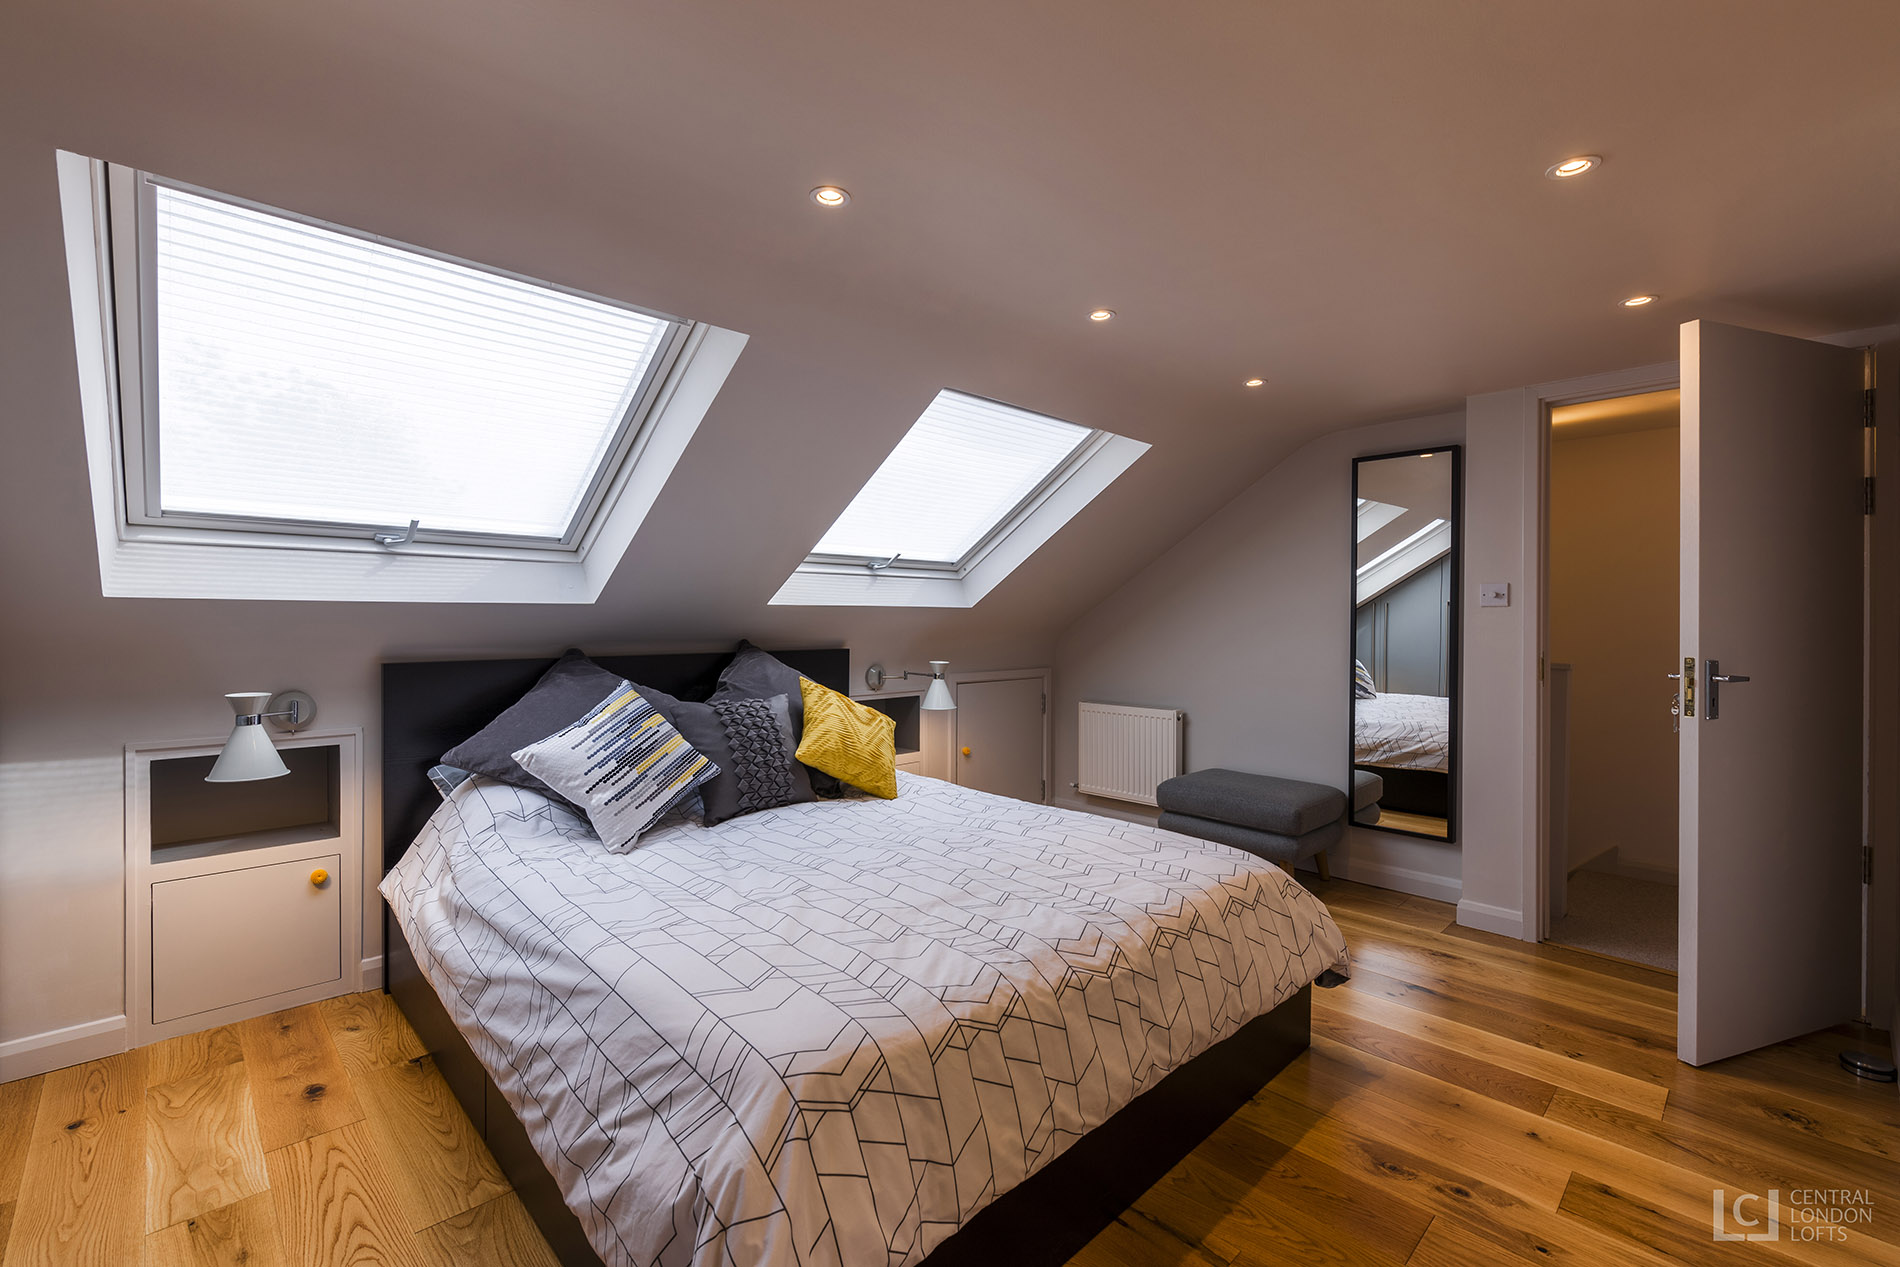 Blackheath loft conversion featuring modern bedroom